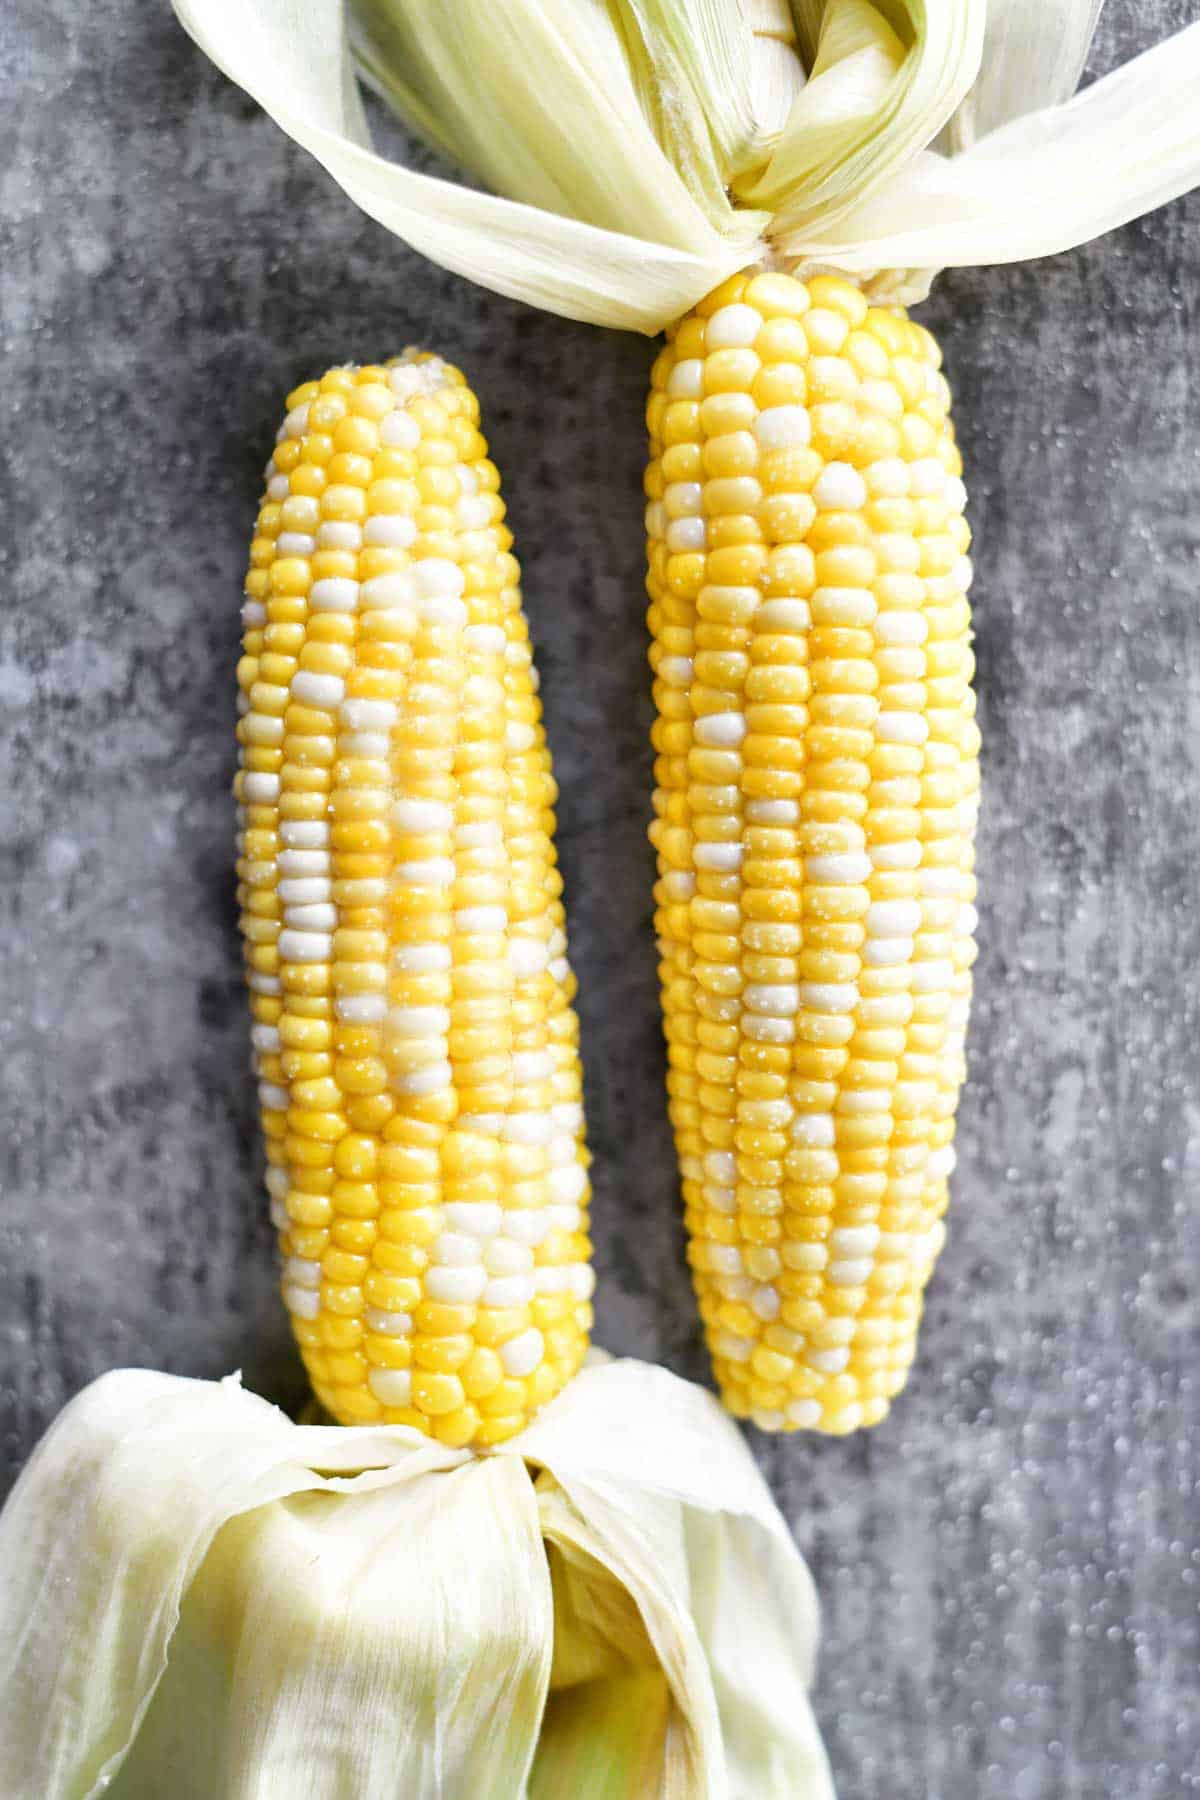 Corn In The Microwave  How To Cook Corn The Cob The Gunny Sack